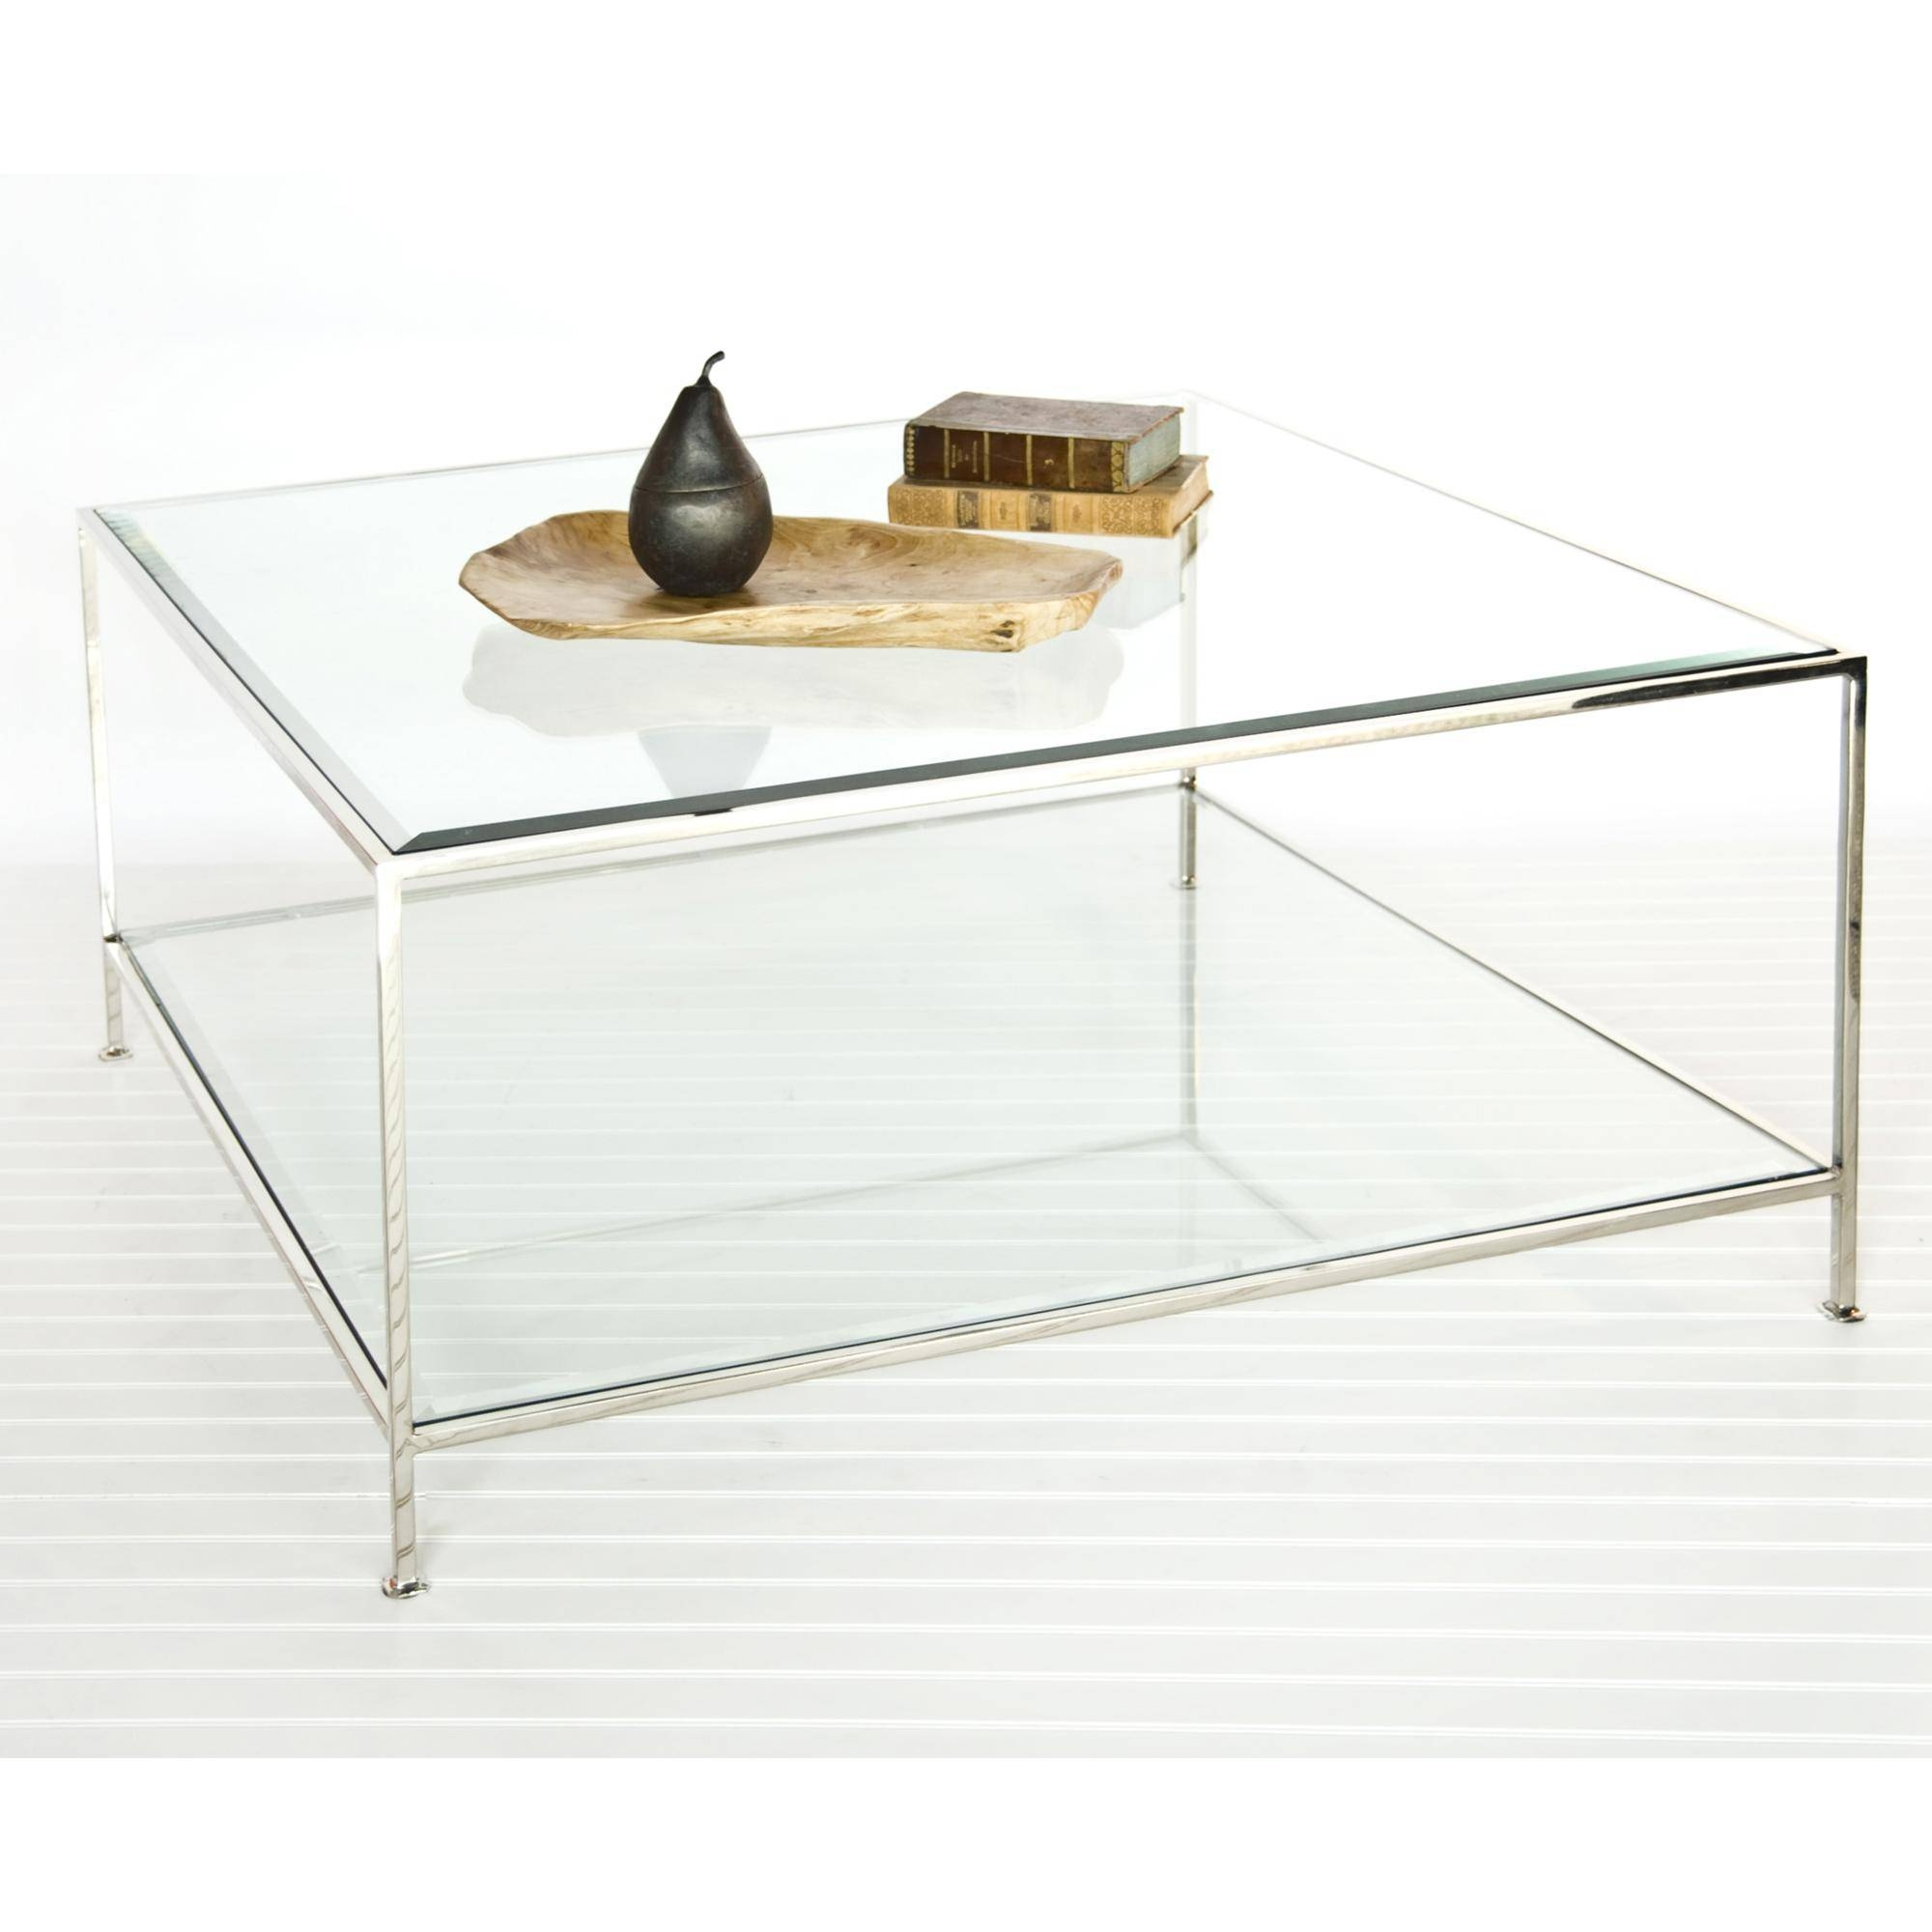 Coffee Table: Enchanting Square Glass Coffee Table Design Ideas with regard to Large Square Glass Coffee Tables (Image 12 of 30)